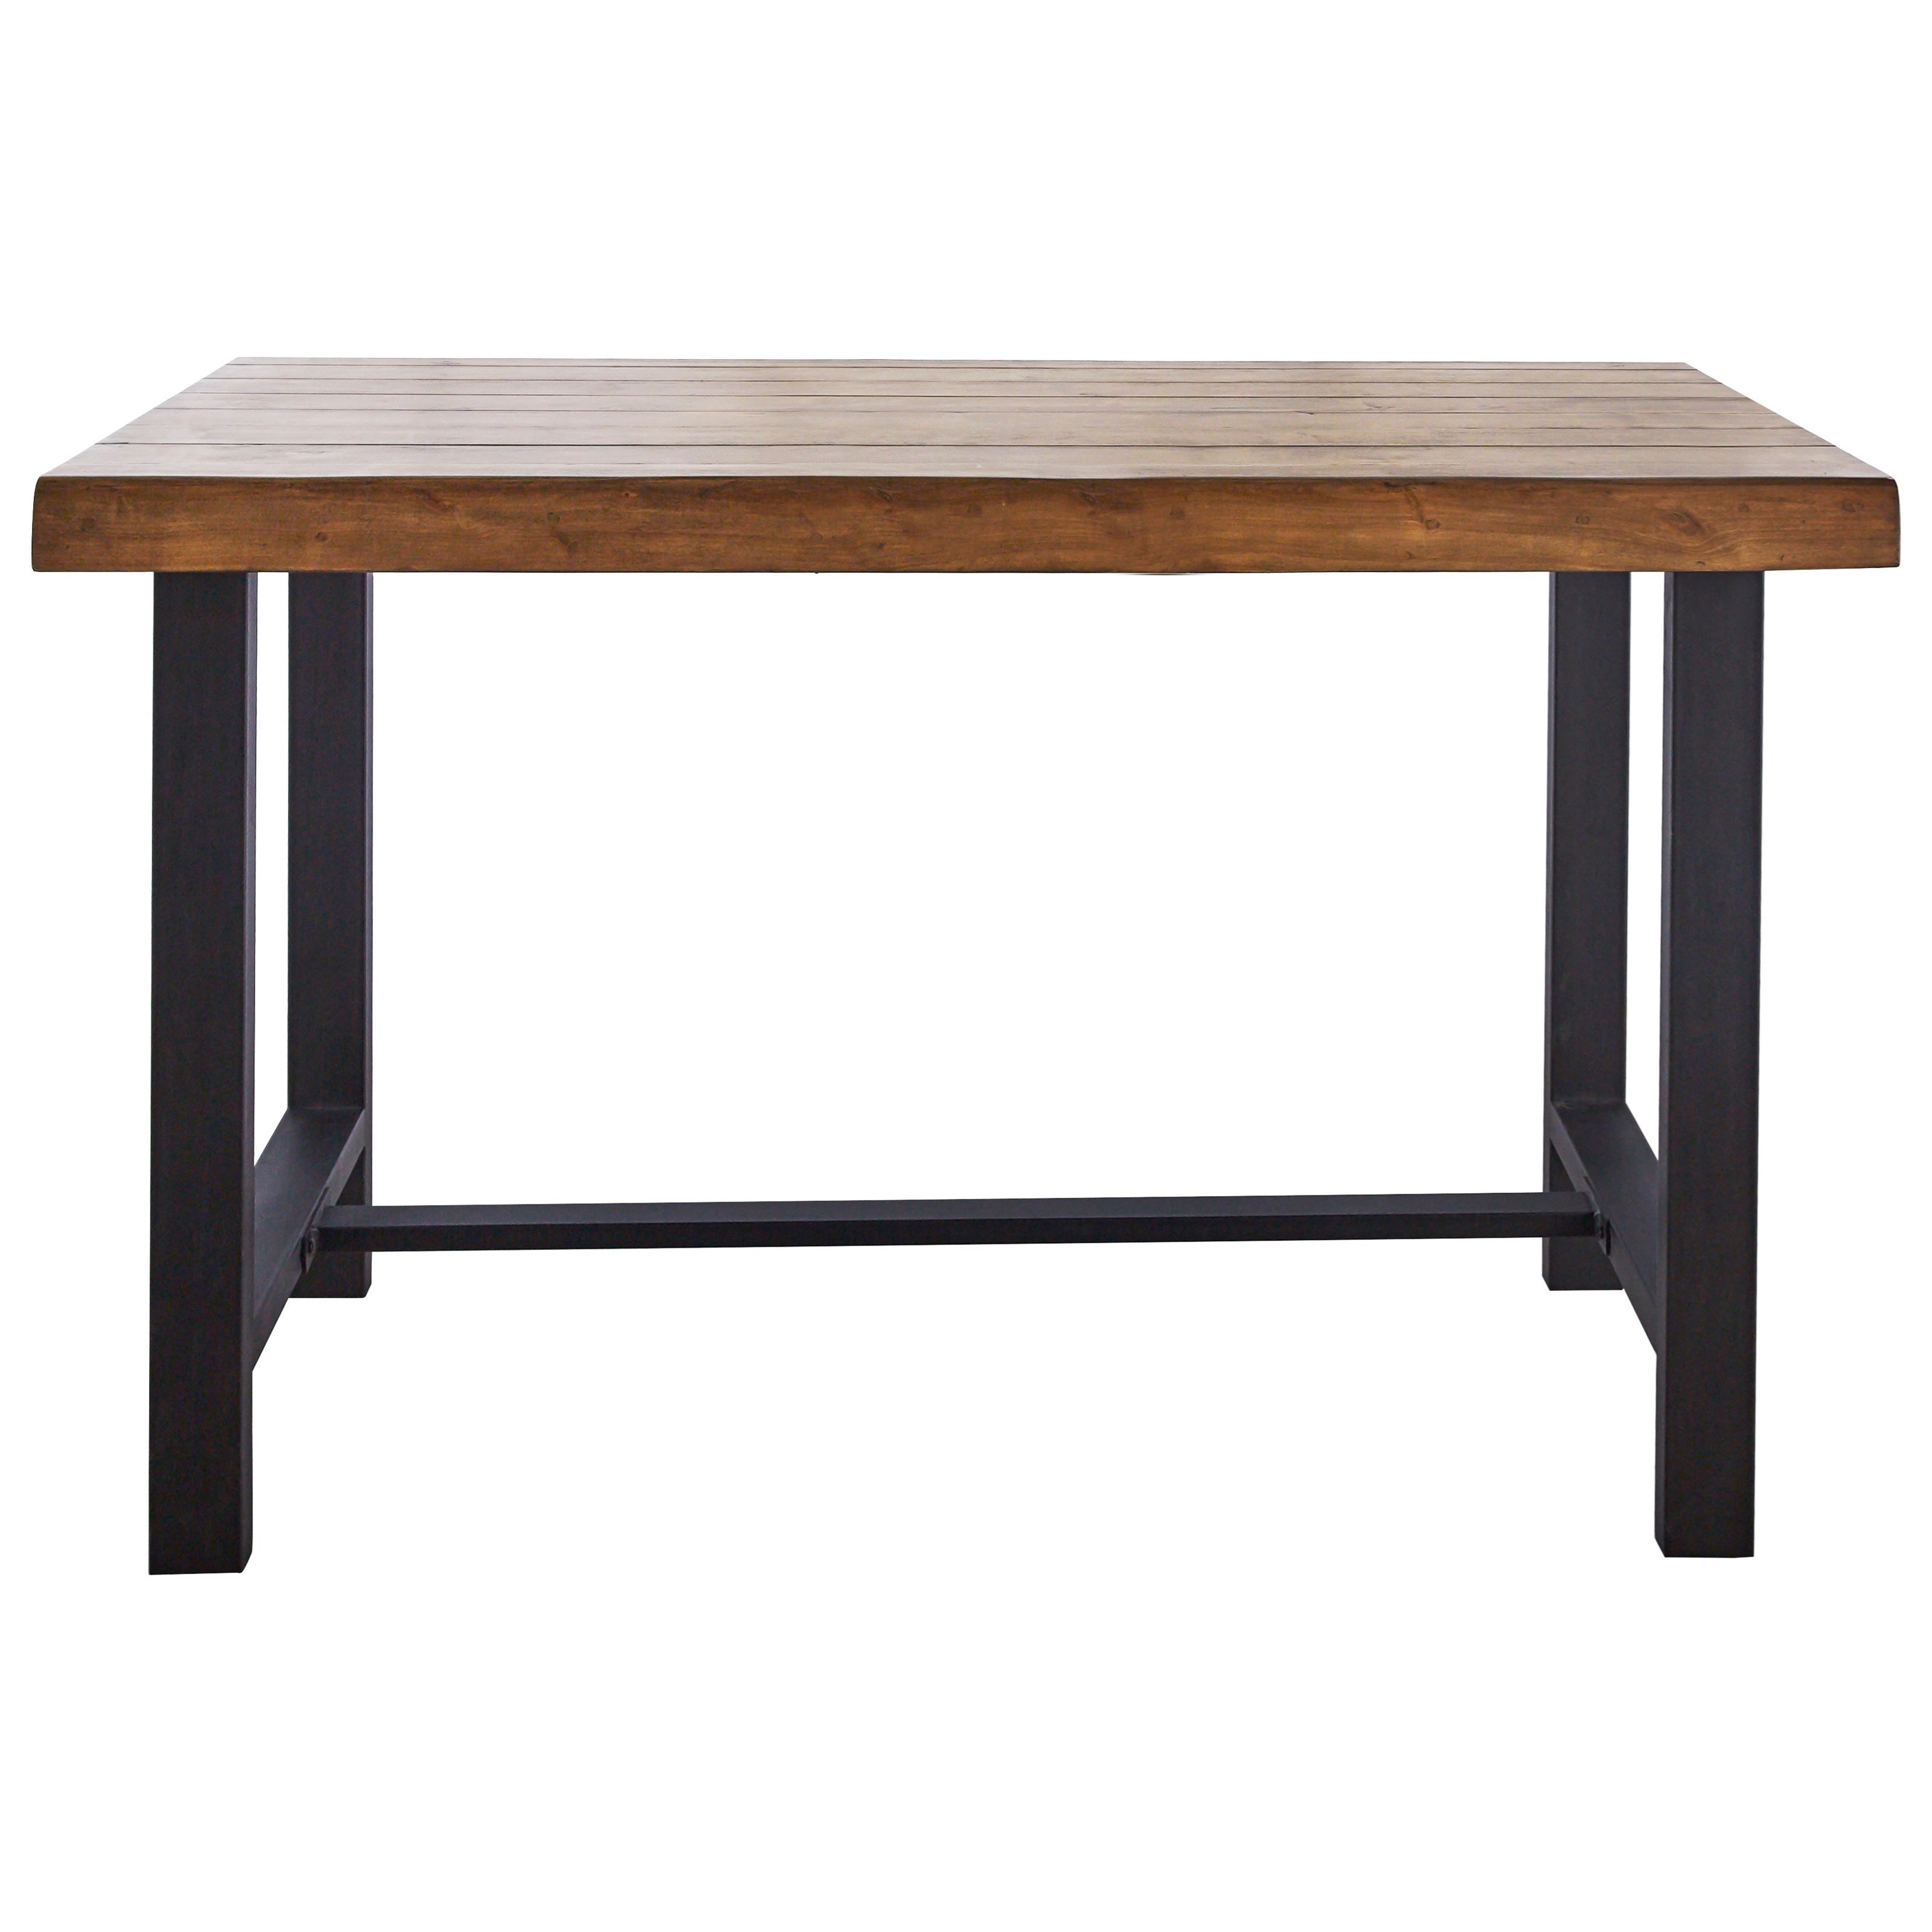 Landon Counter Height Table by Steve Silver at Walker's Furniture